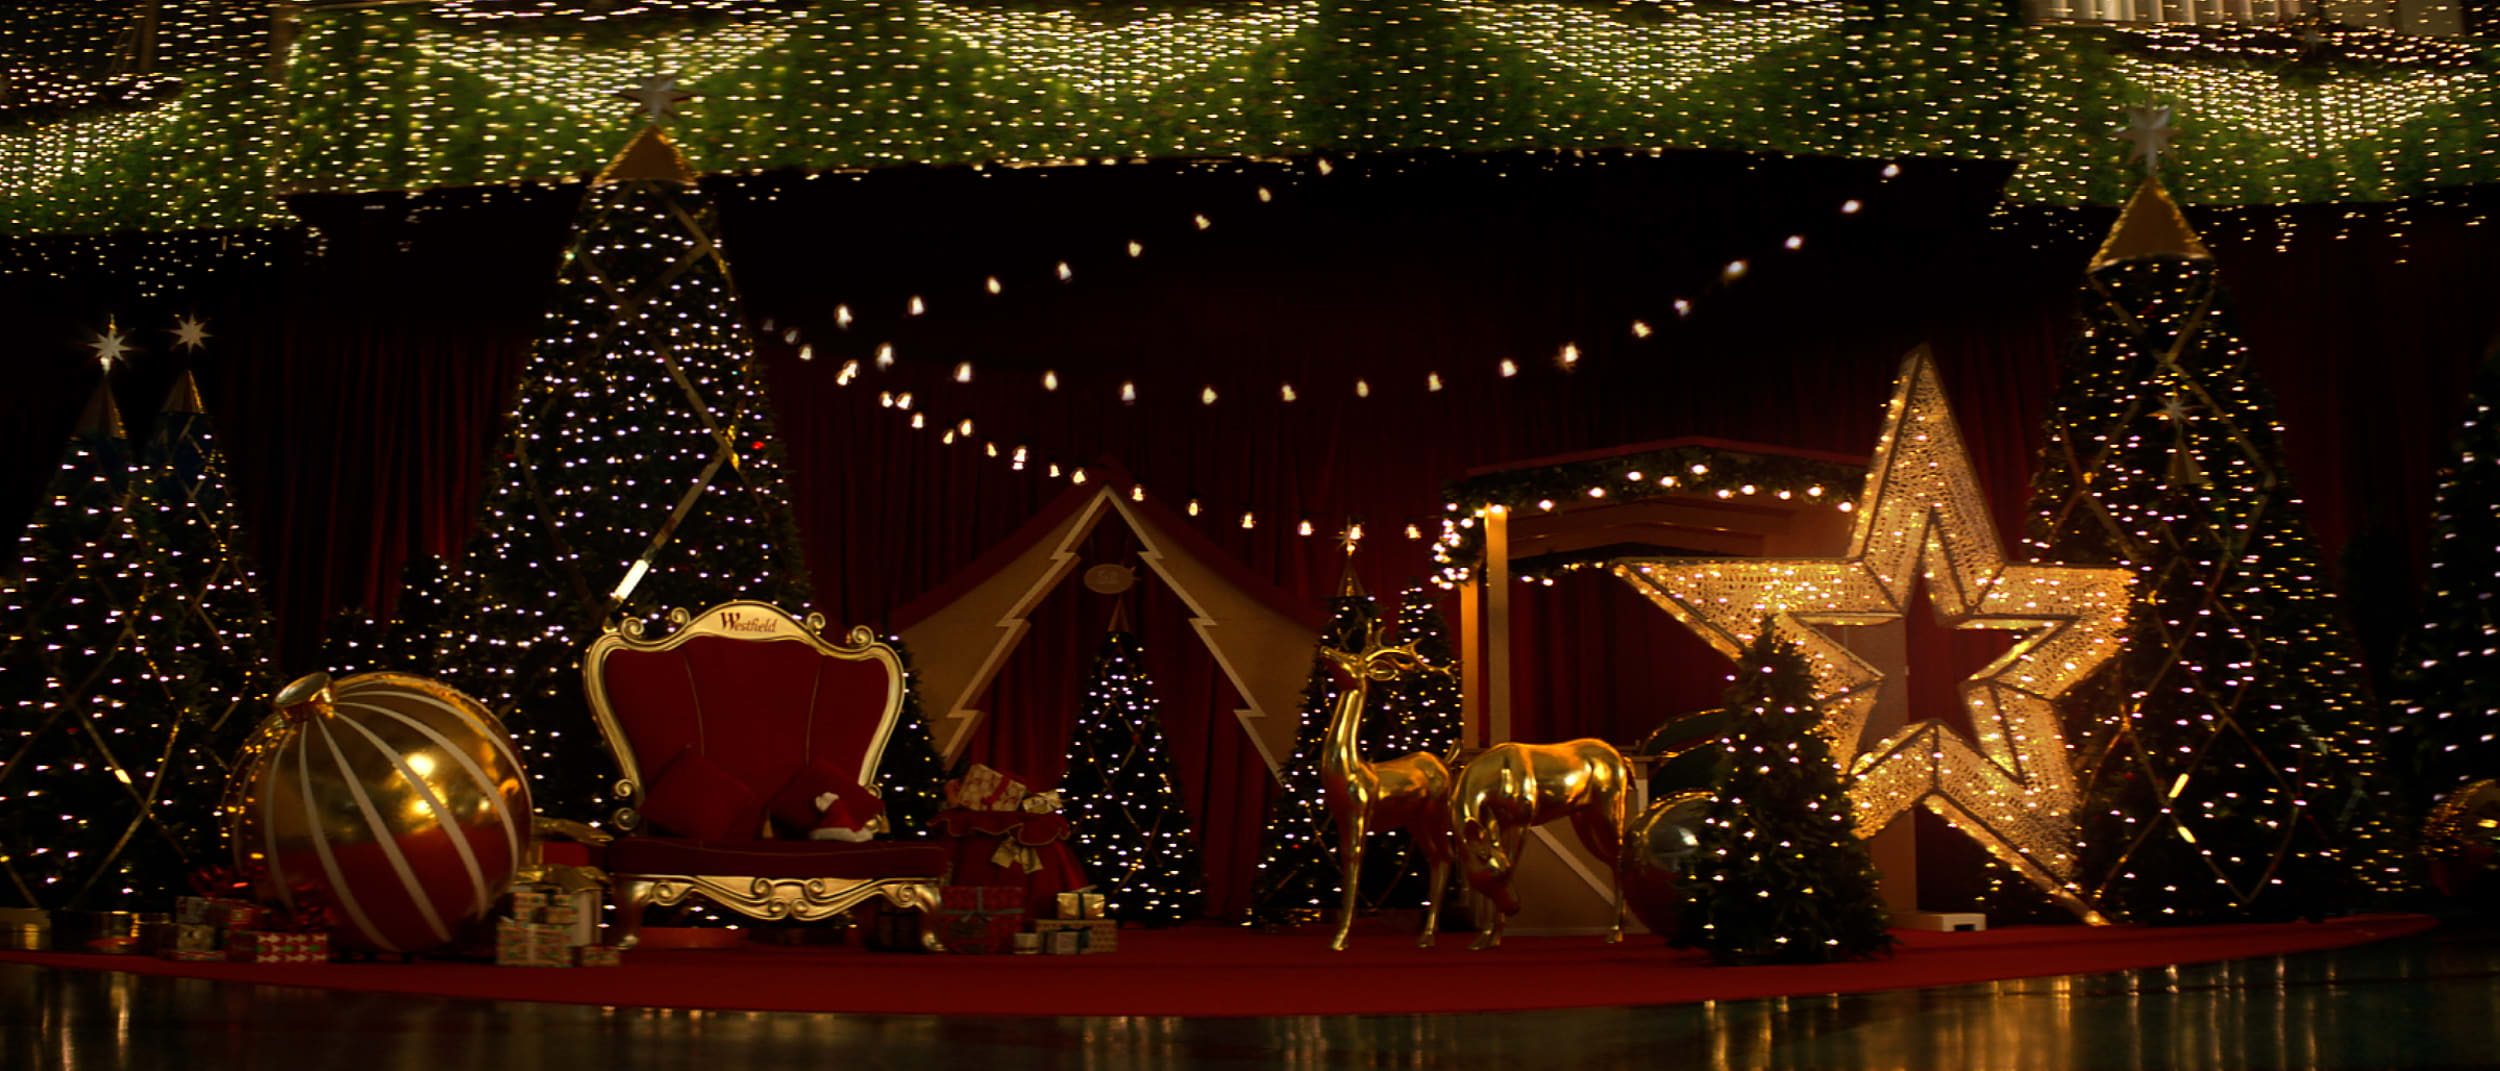 Christmas at Westfield Tea Tree Plaza this year